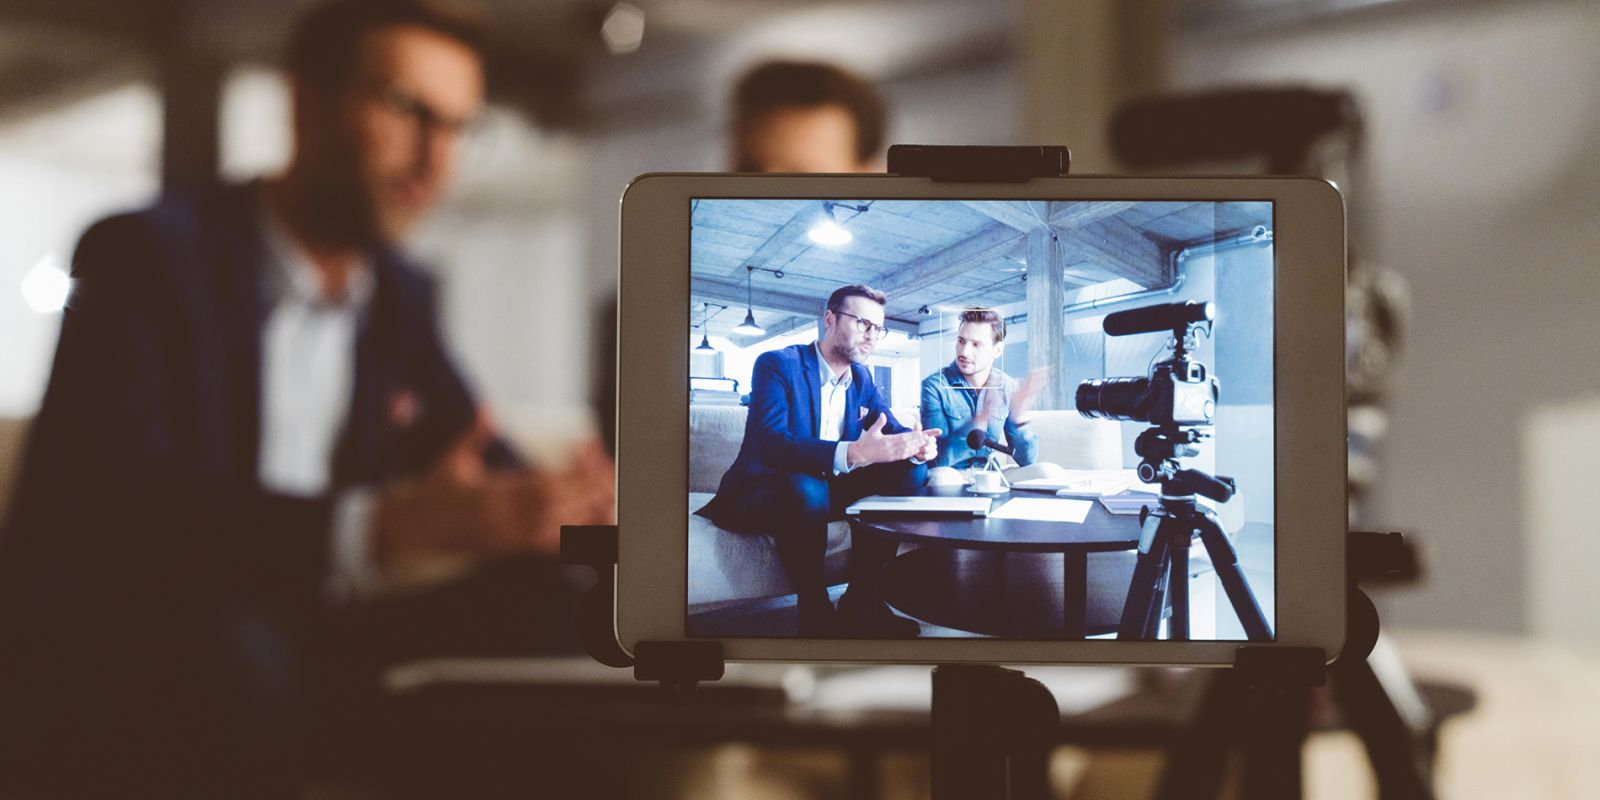 A picture of a video camera focused in on an interview between two men, whilst they sit blurred in the background, on the brand video strategy page.